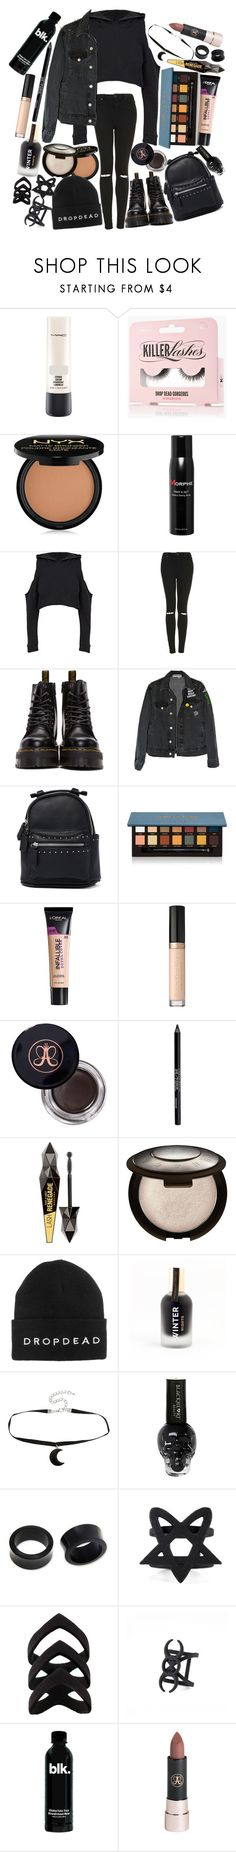 """Everything has fallen to pieces, earth is dying help me Jesus. We need guidance, we've been misled, young and hostile, but not stupid"" by thelyricsmatter ❤ liked on Polyvore featuring MAC Cosmetics, NYX, Morphe, Topshop, Dr. Martens, Like Dreams, Anastasia Beverly Hills, L'Oréal Paris, Urban Decay and Becca"